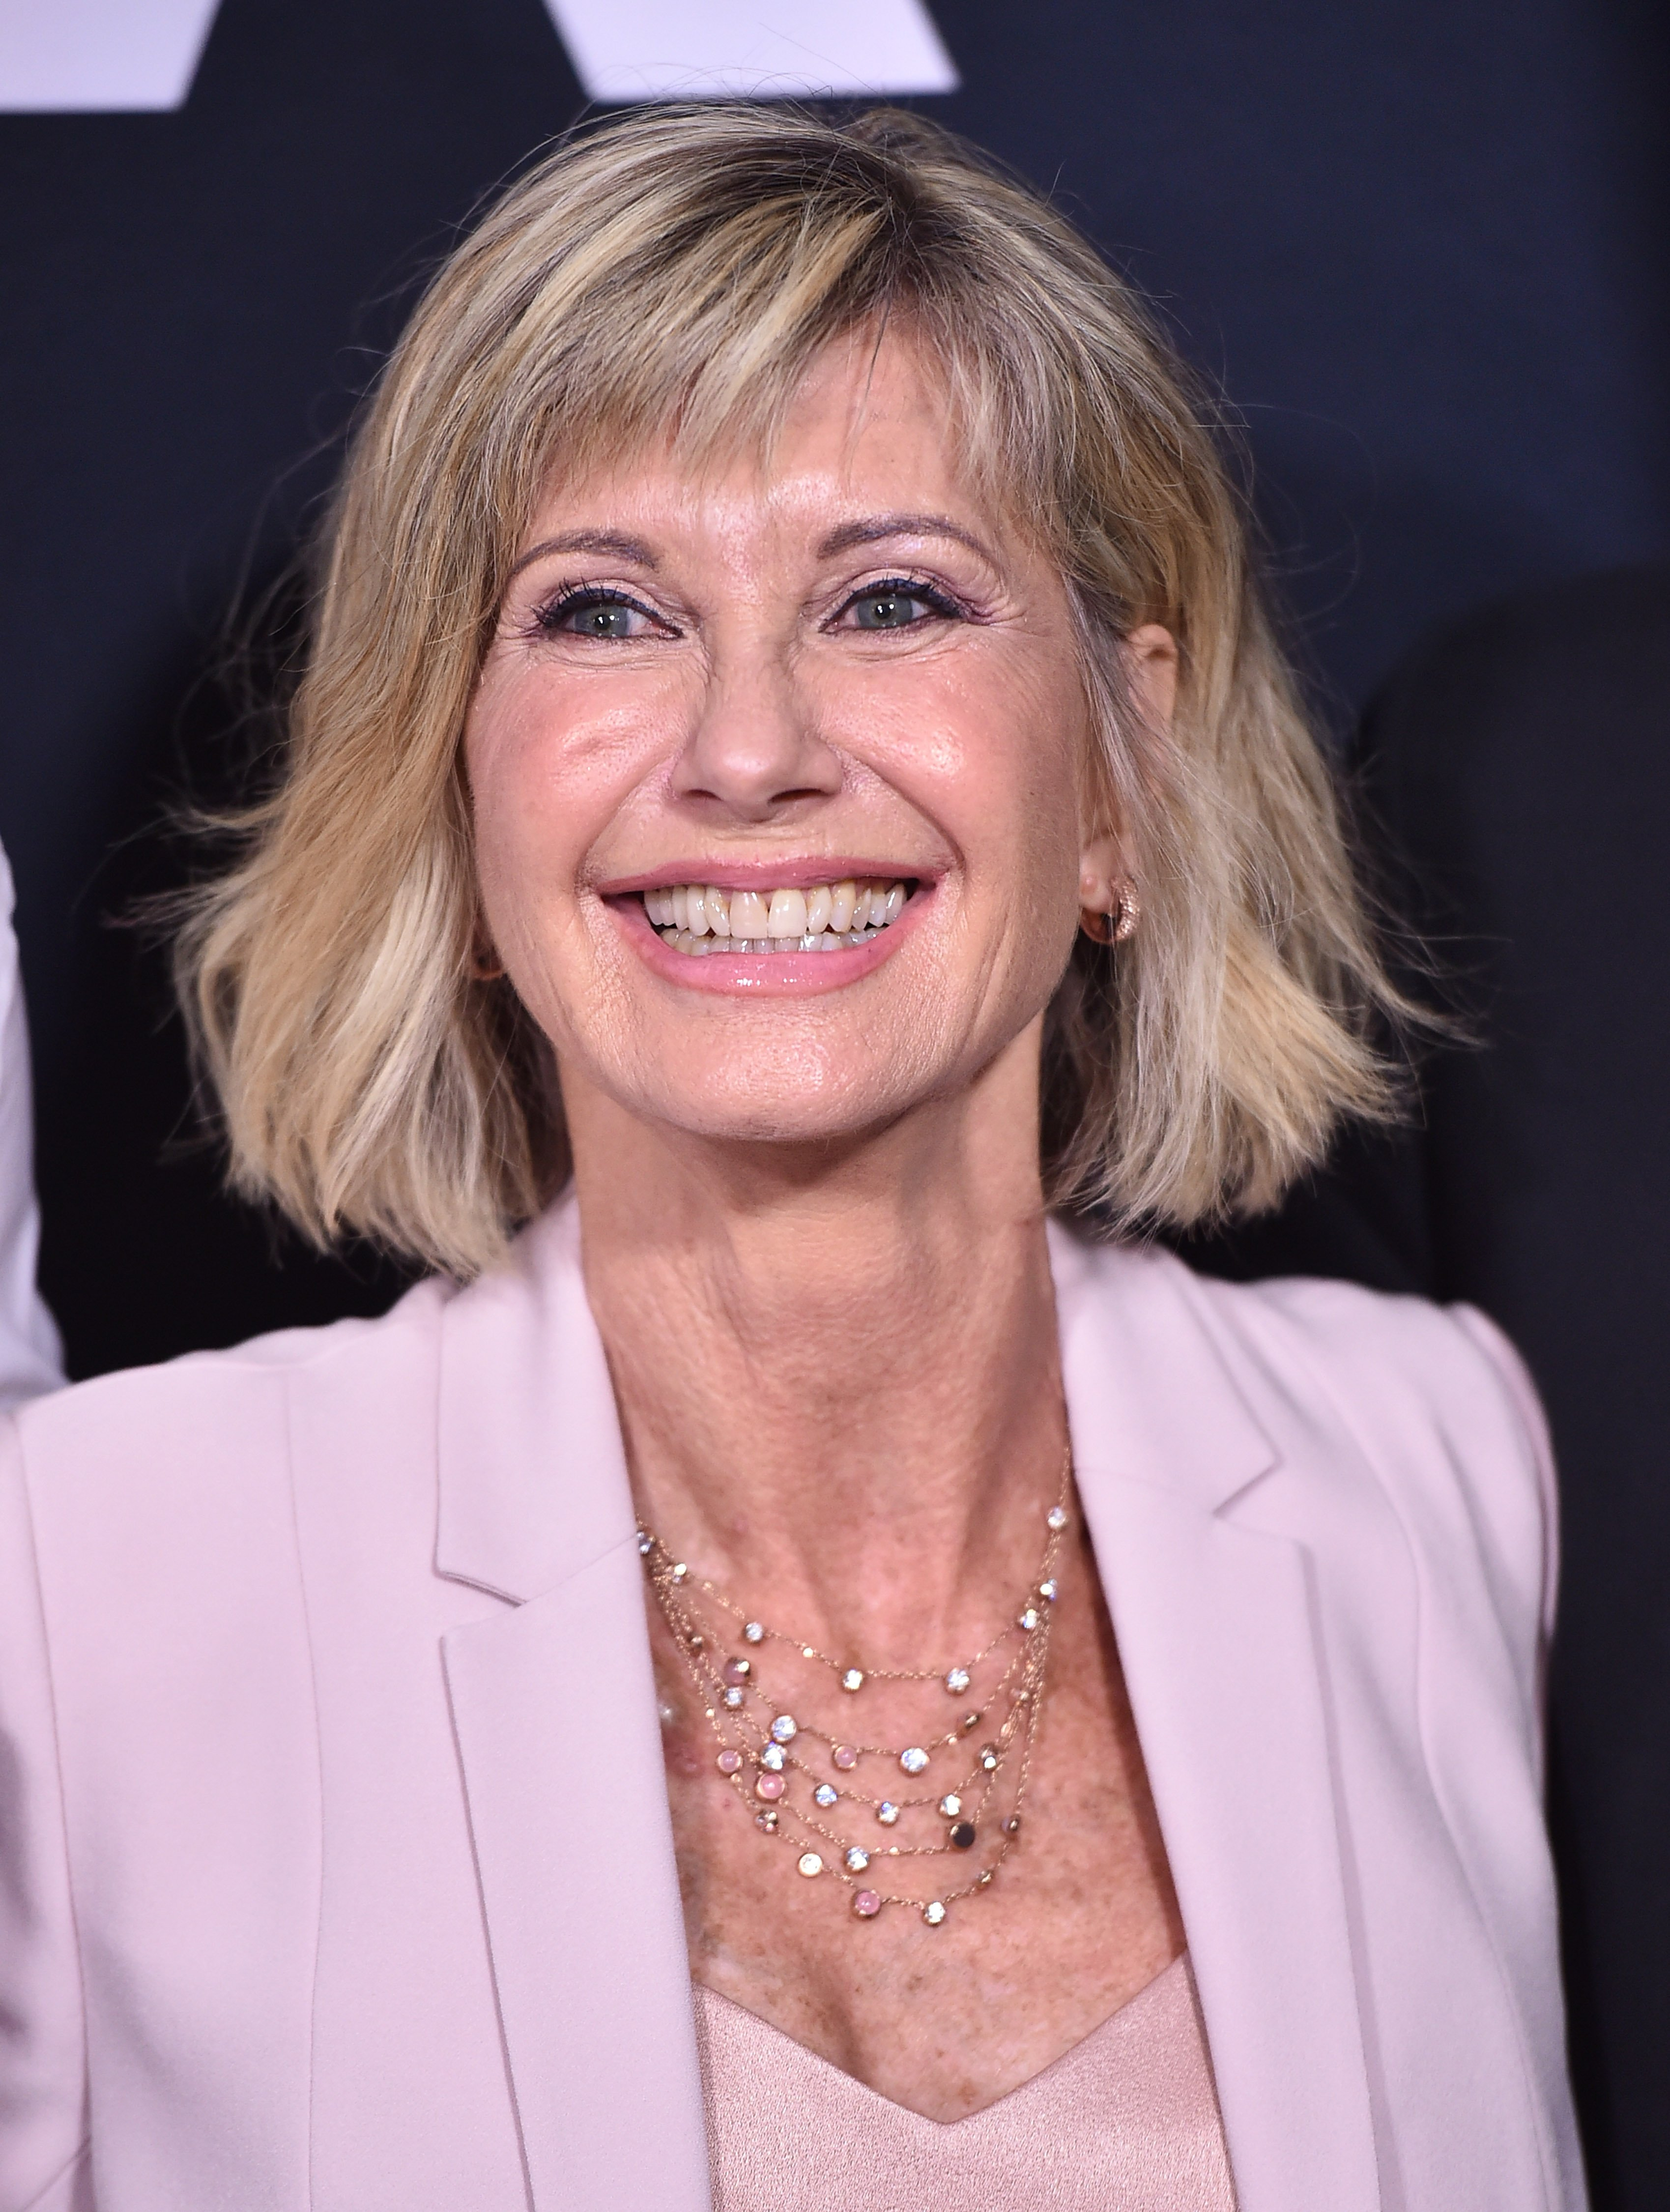 Olivia Newton-John at the Academy Presents 'Grease' (1978) 40th Anniversary at the Samuel Goldwyn Theater on August 15, 2018 in Beverly Hills, California | Photo: Getty Images